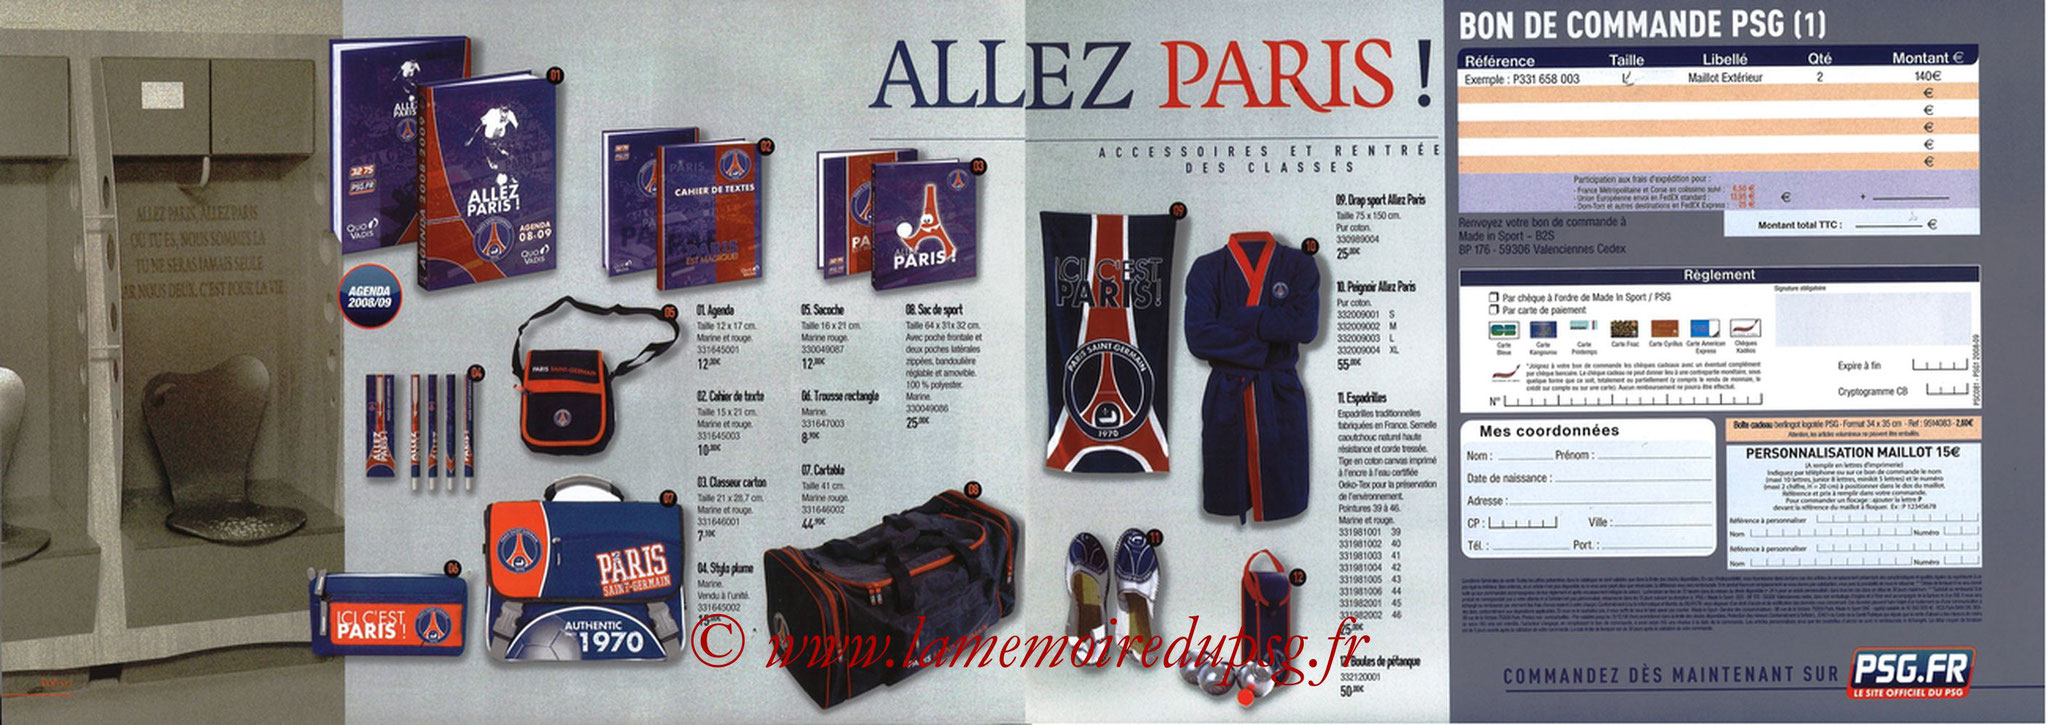 Catalogue PSG - 2008-09 - Pages 06 et 07